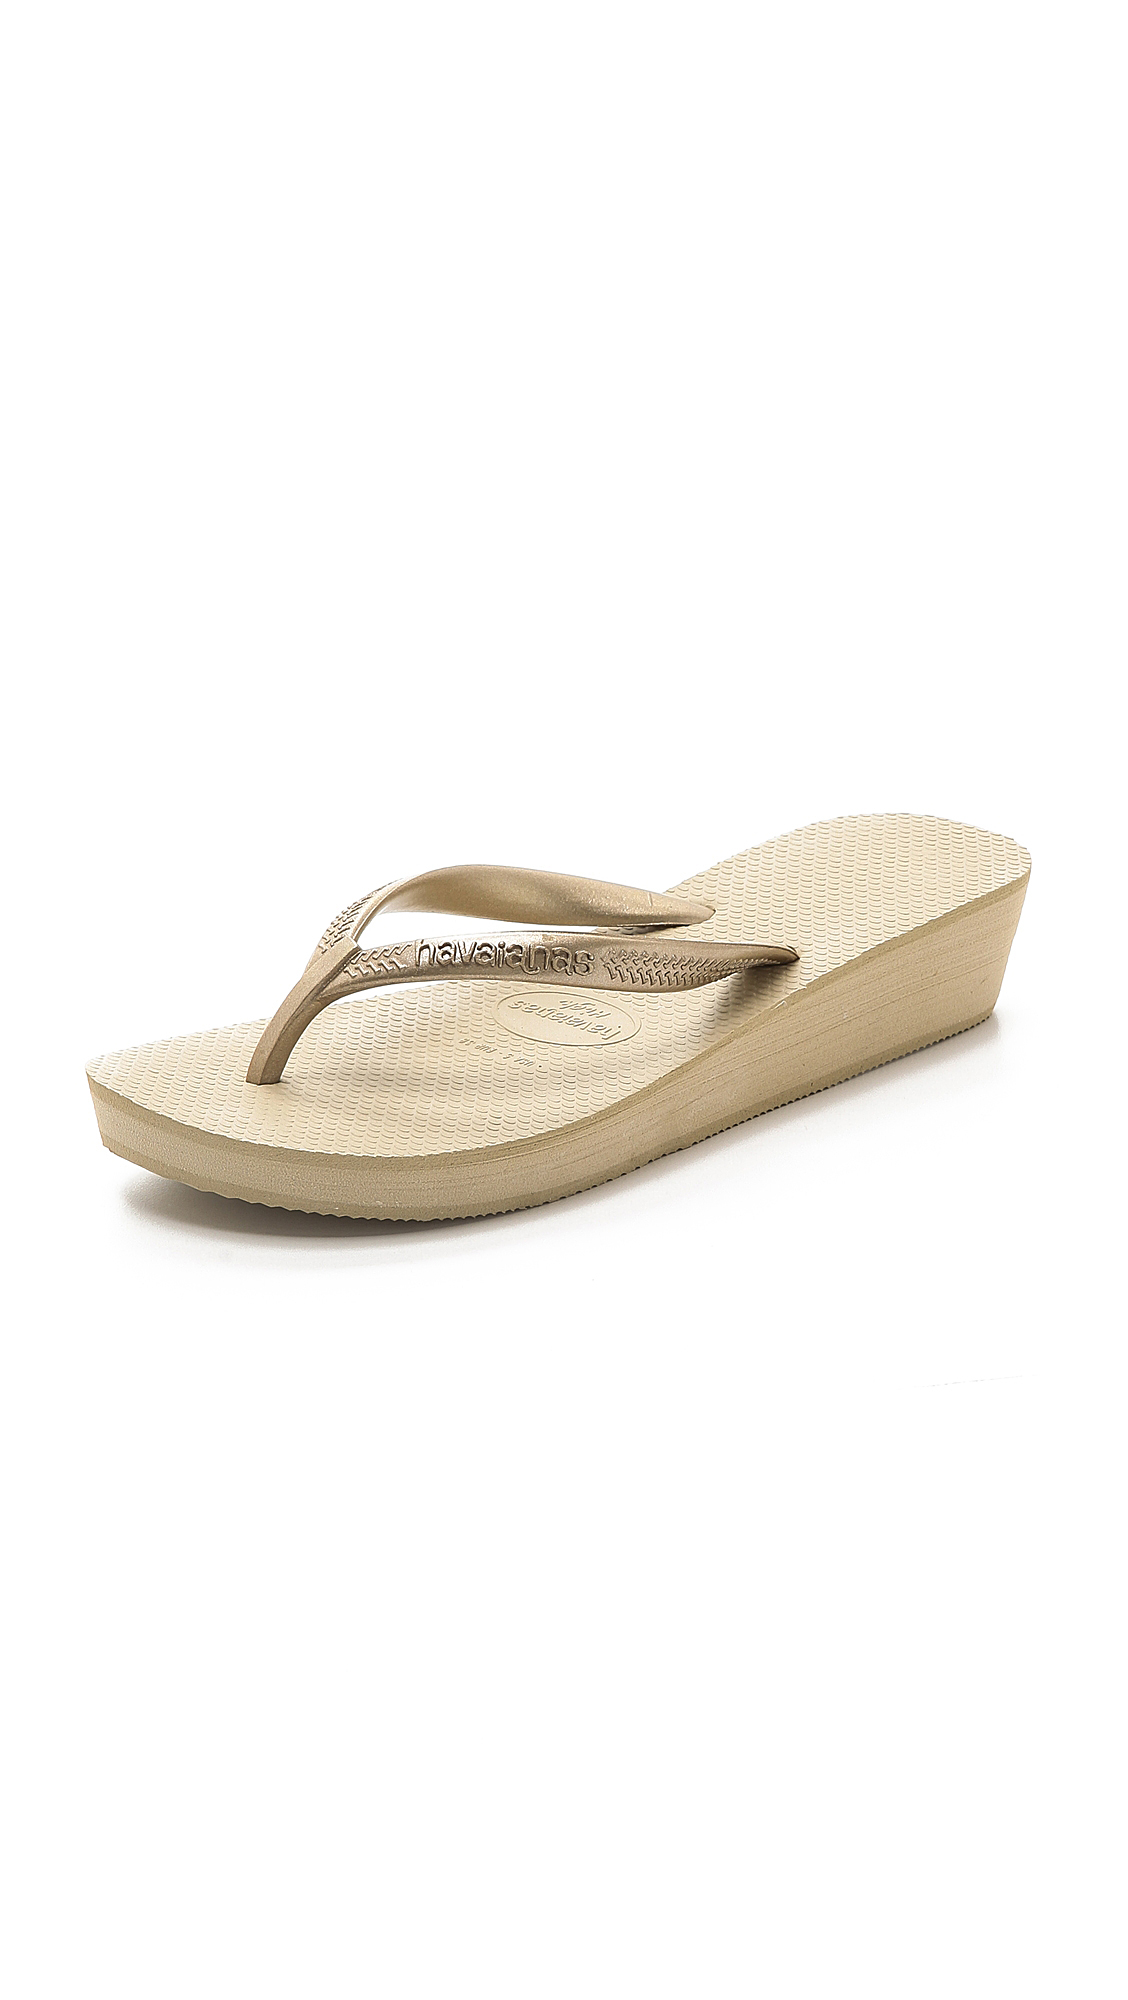 Photo of Havaianas High Light Wedge Flip Flop Sand Grey-Light Golden - Havaianas online